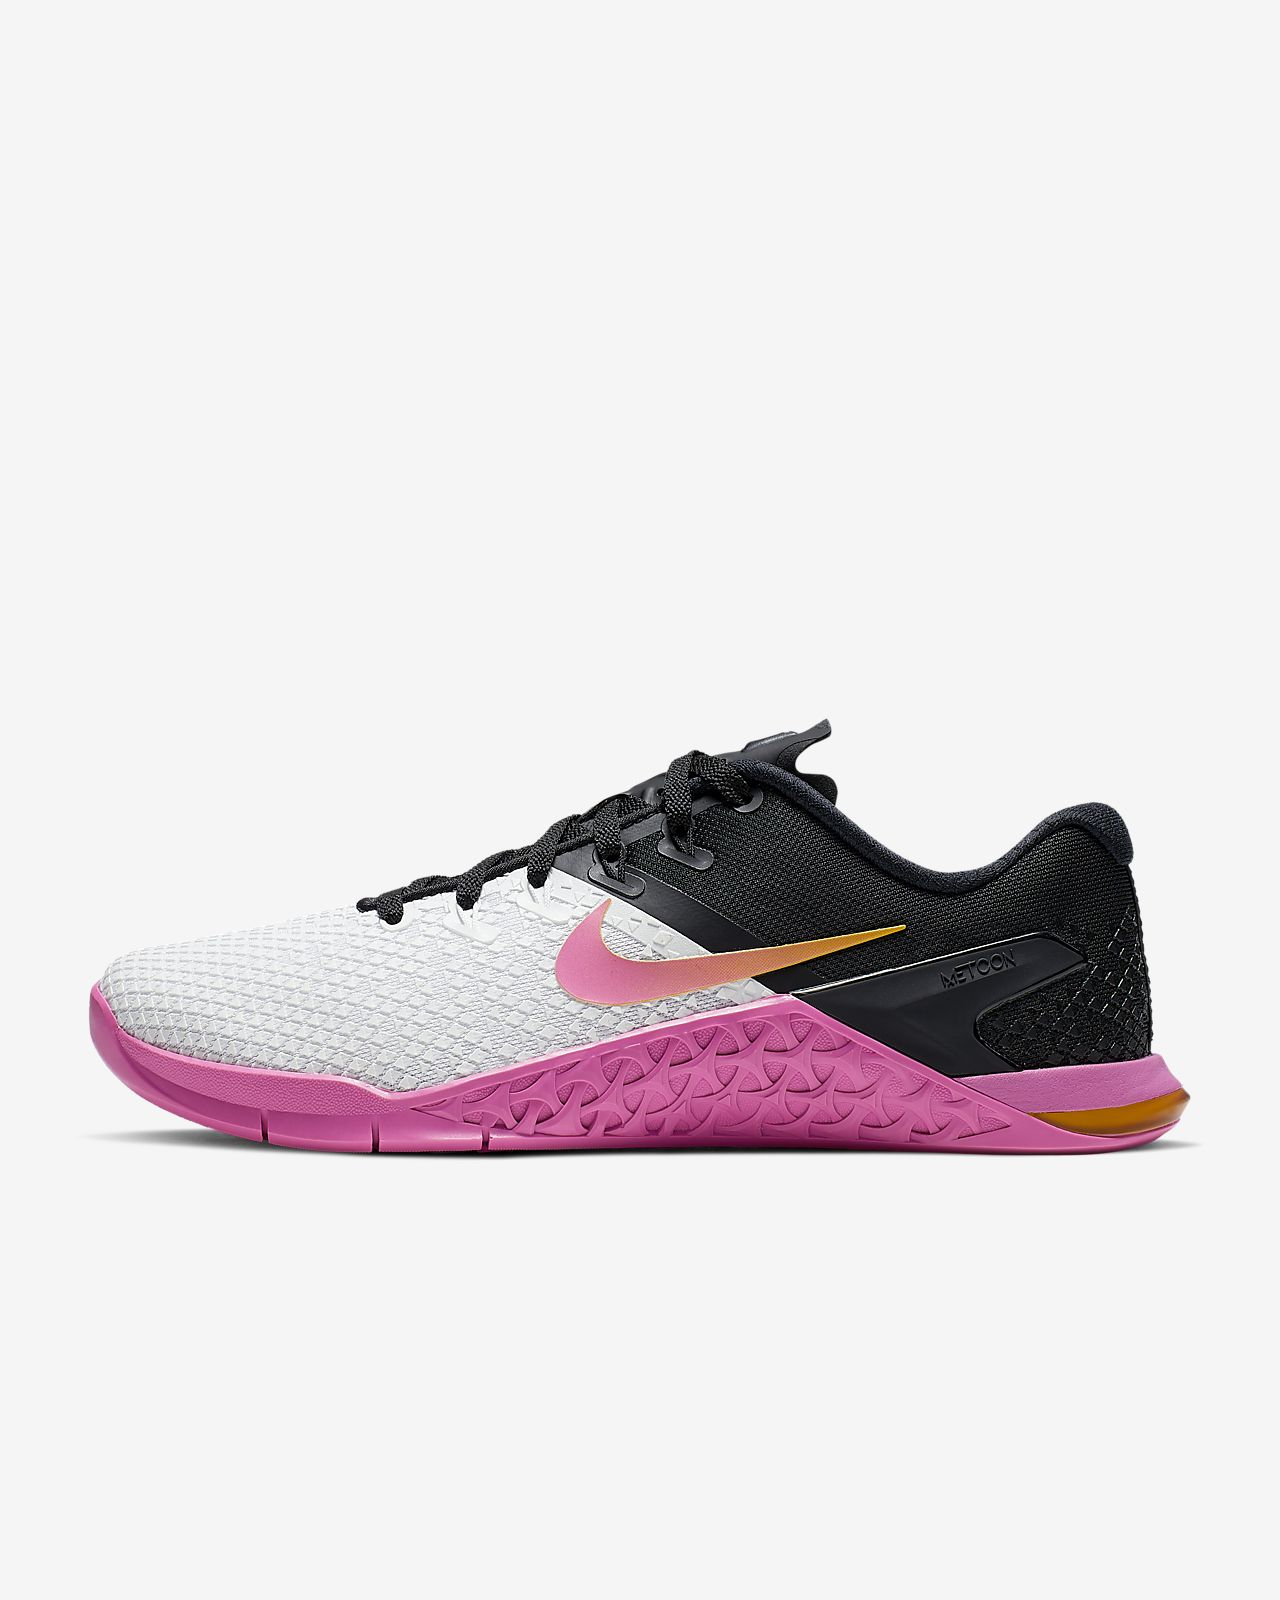 b1f623713d5c87 Nike Metcon 4 XD Women's Cross Training/Weightlifting Shoe. Nike.com